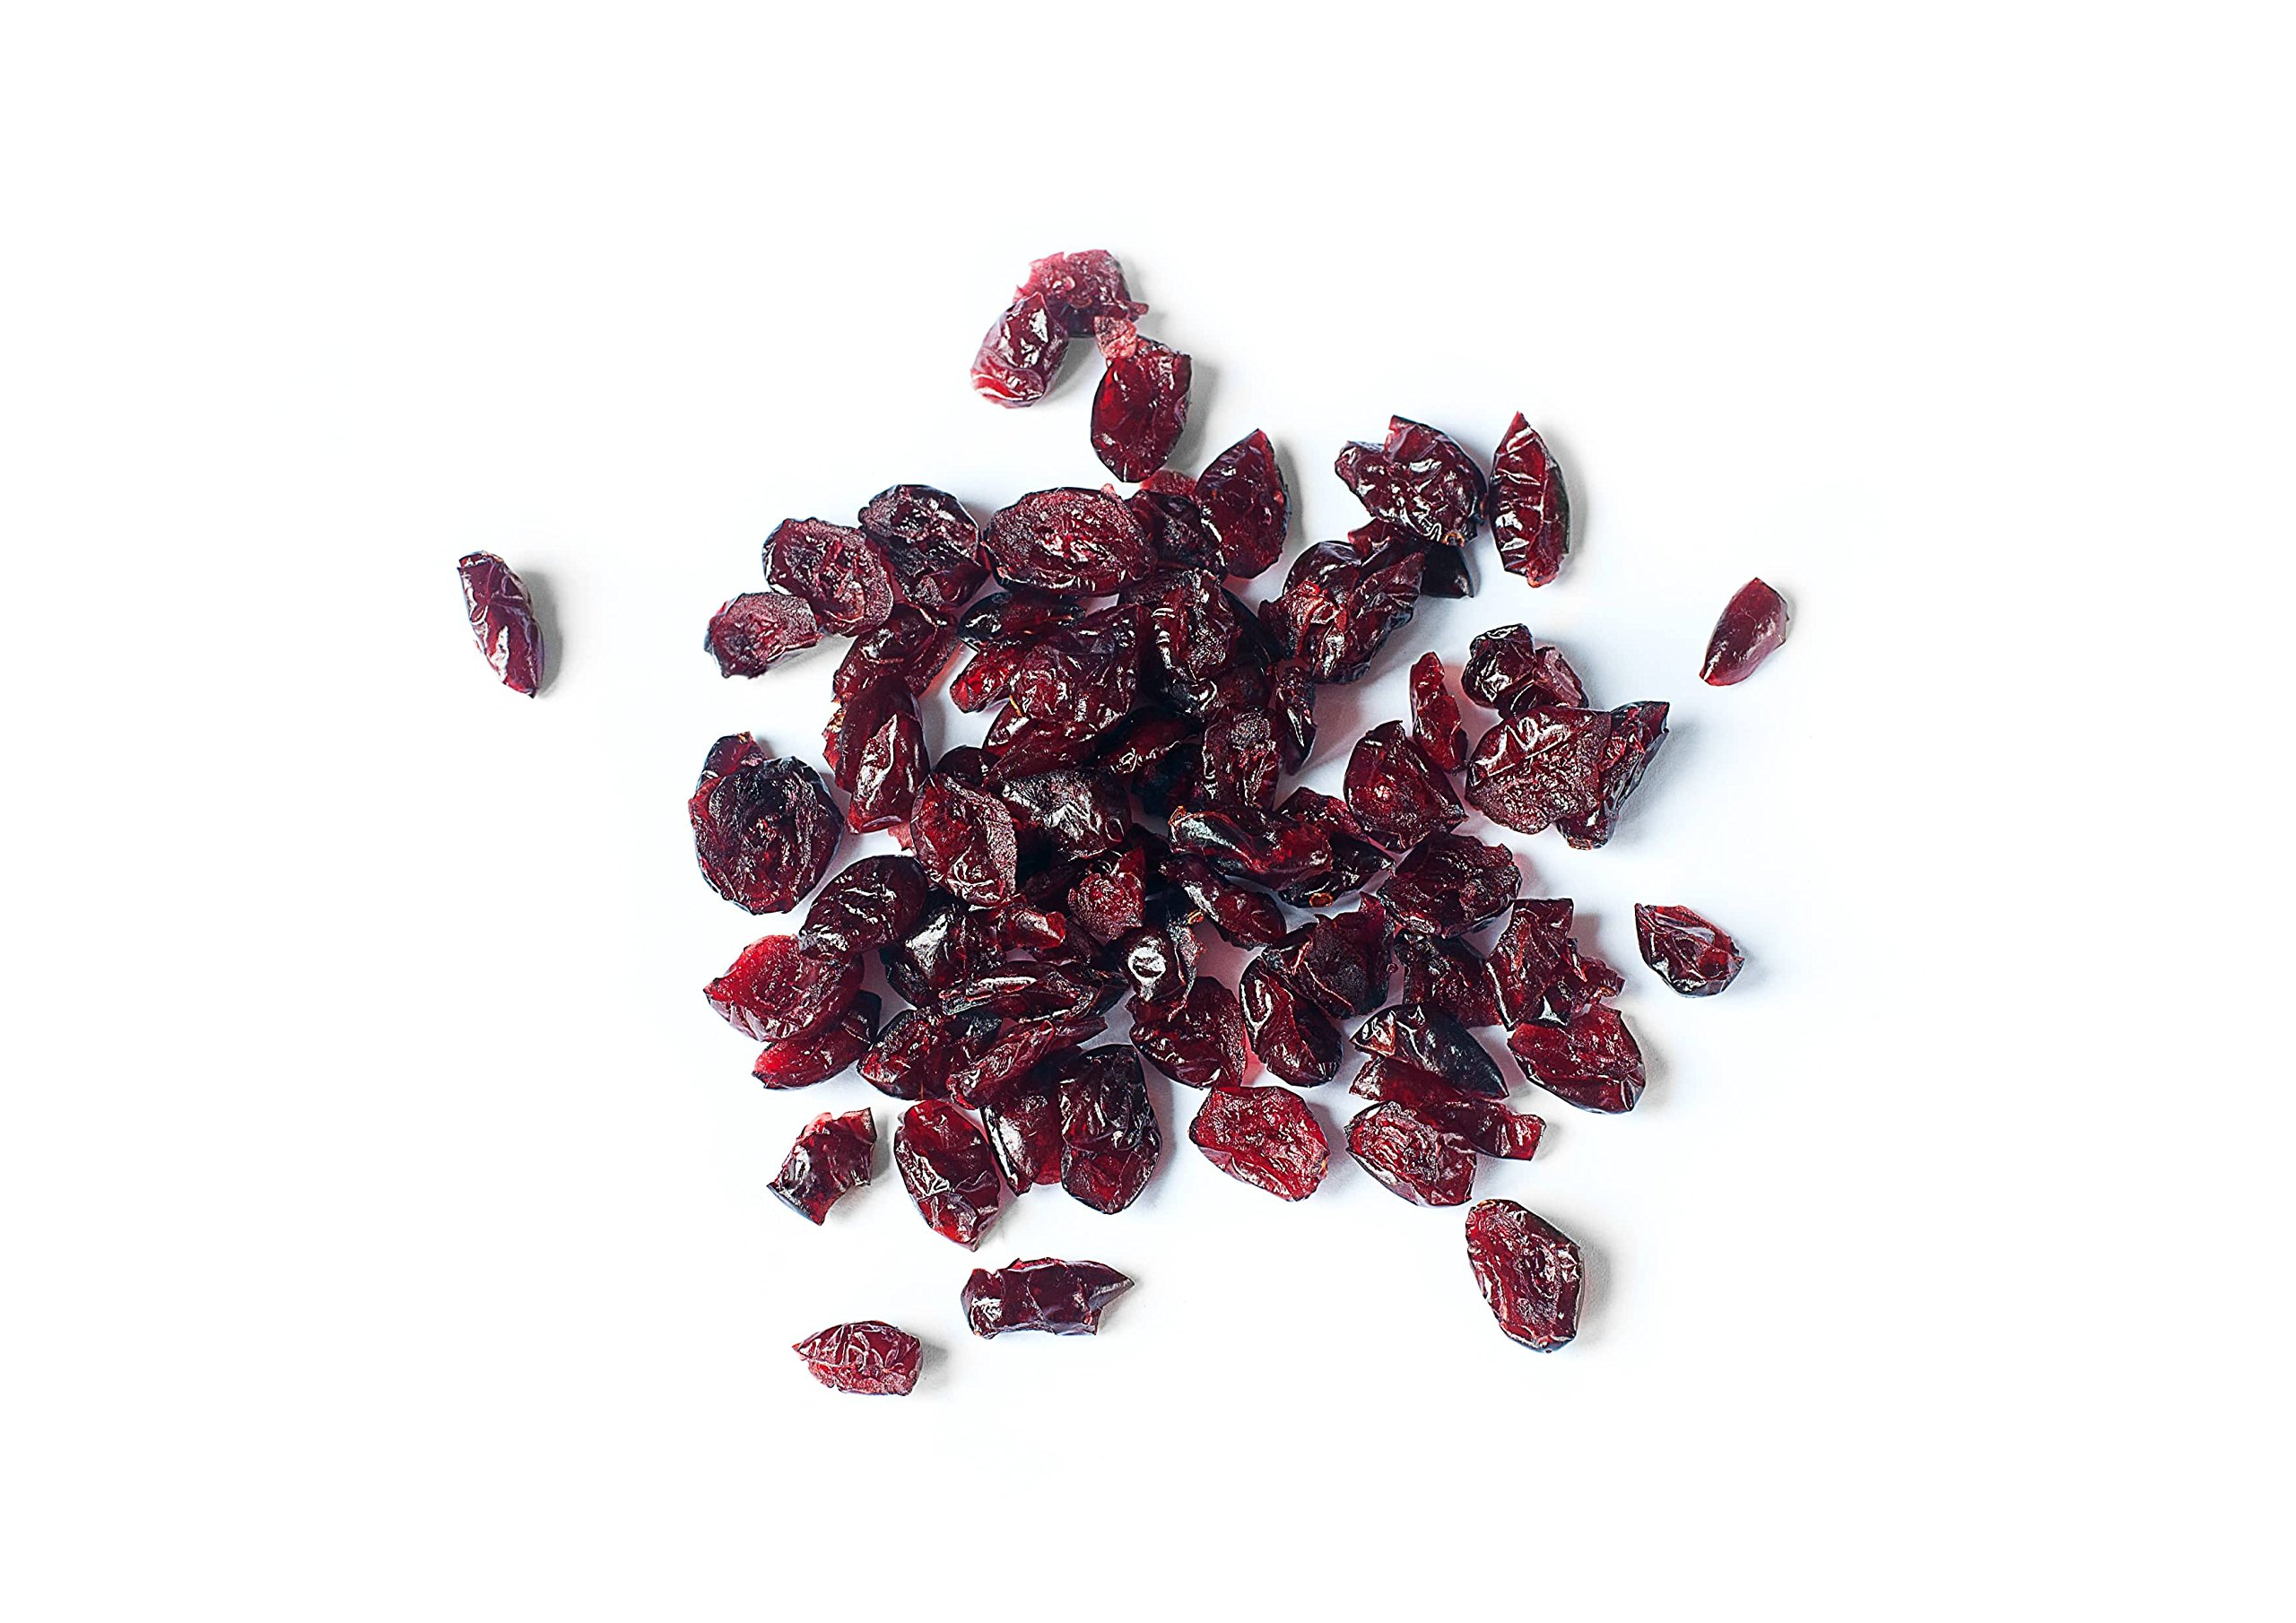 Organic Dried Cranberries, 25 Pounds — Non-GMO, Kosher, Unsulfured, Bulk